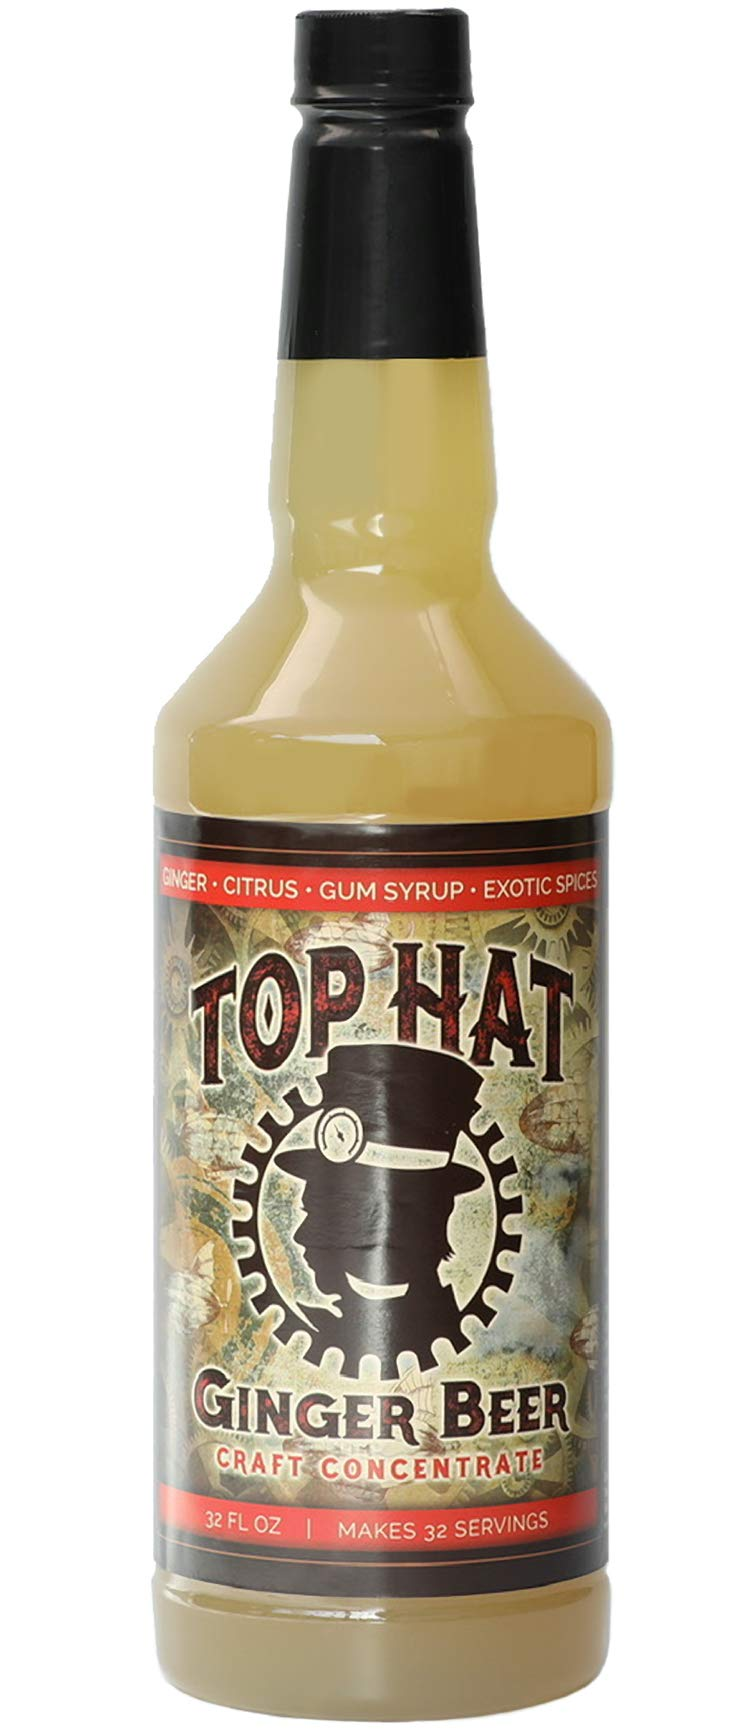 Top Hat Craft Ginger Beer - Ginger Syrup - Moscow Mule Mix (32oz Syrup Concentrate) - Makes 6 Quarts of Ginger Beer at Home - Works with SodaStream